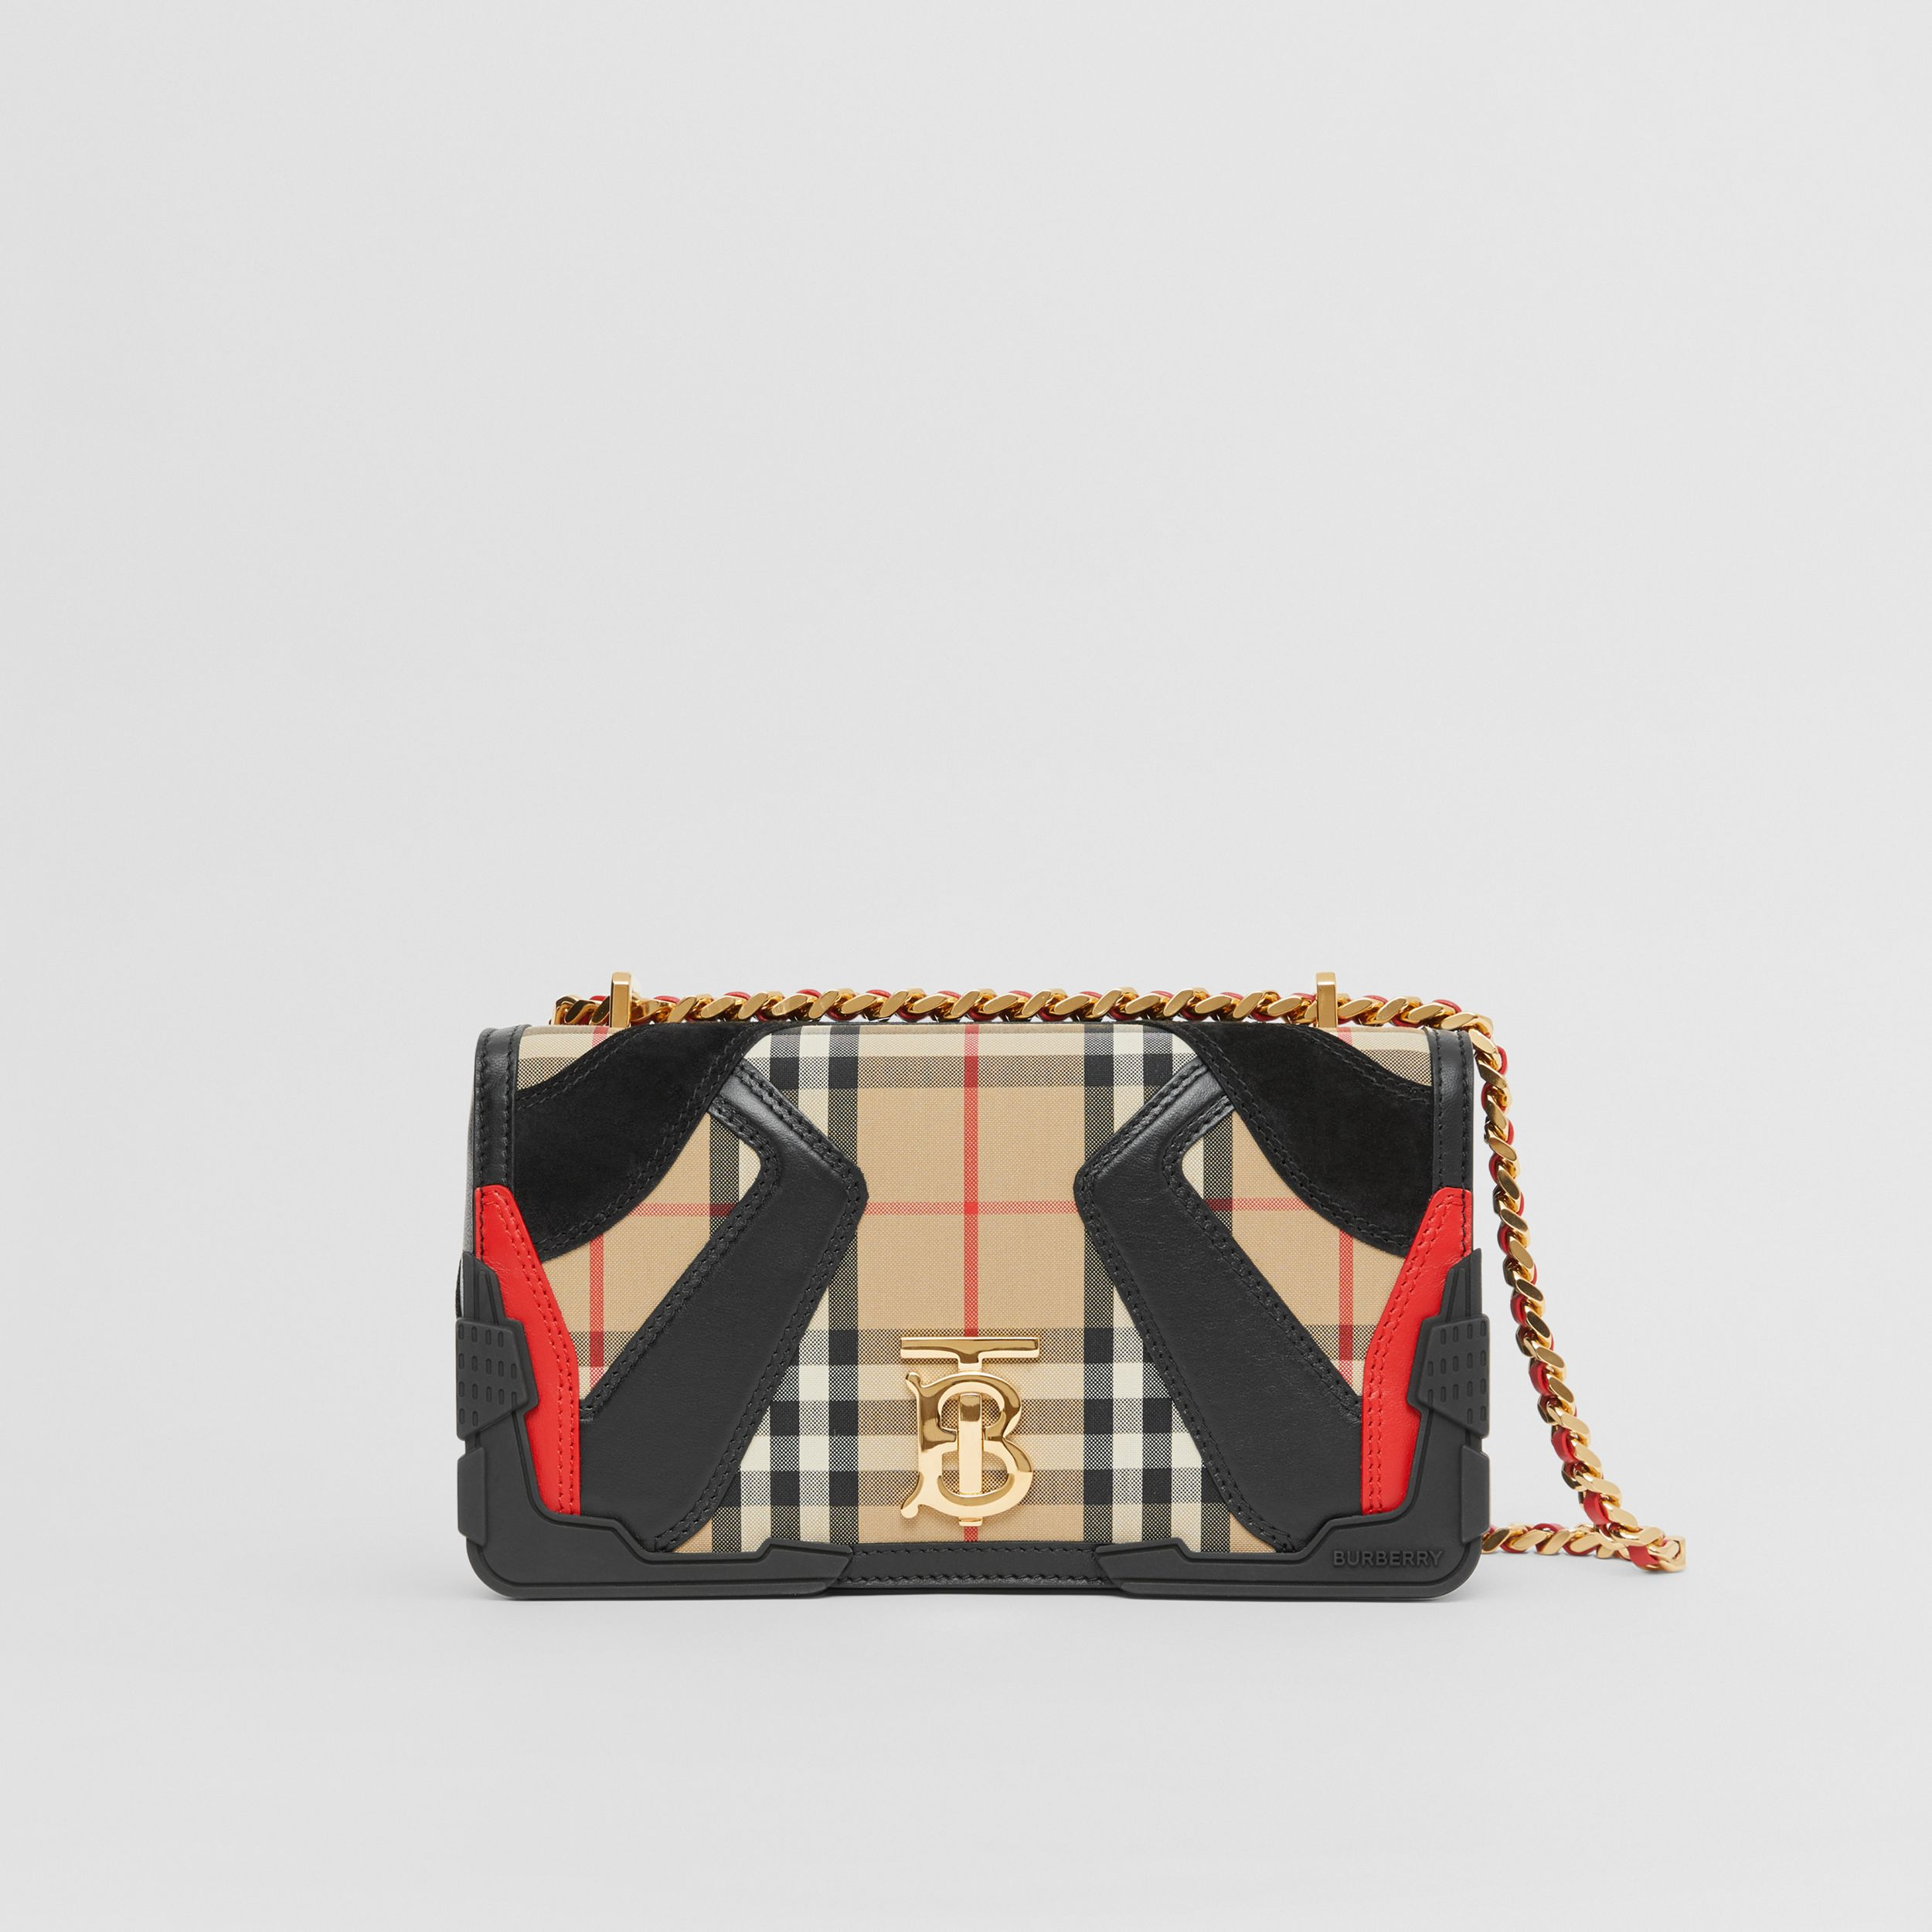 Small Appliqué Vintage Check Lola Bag in Archive Beige - Women | Burberry - 1